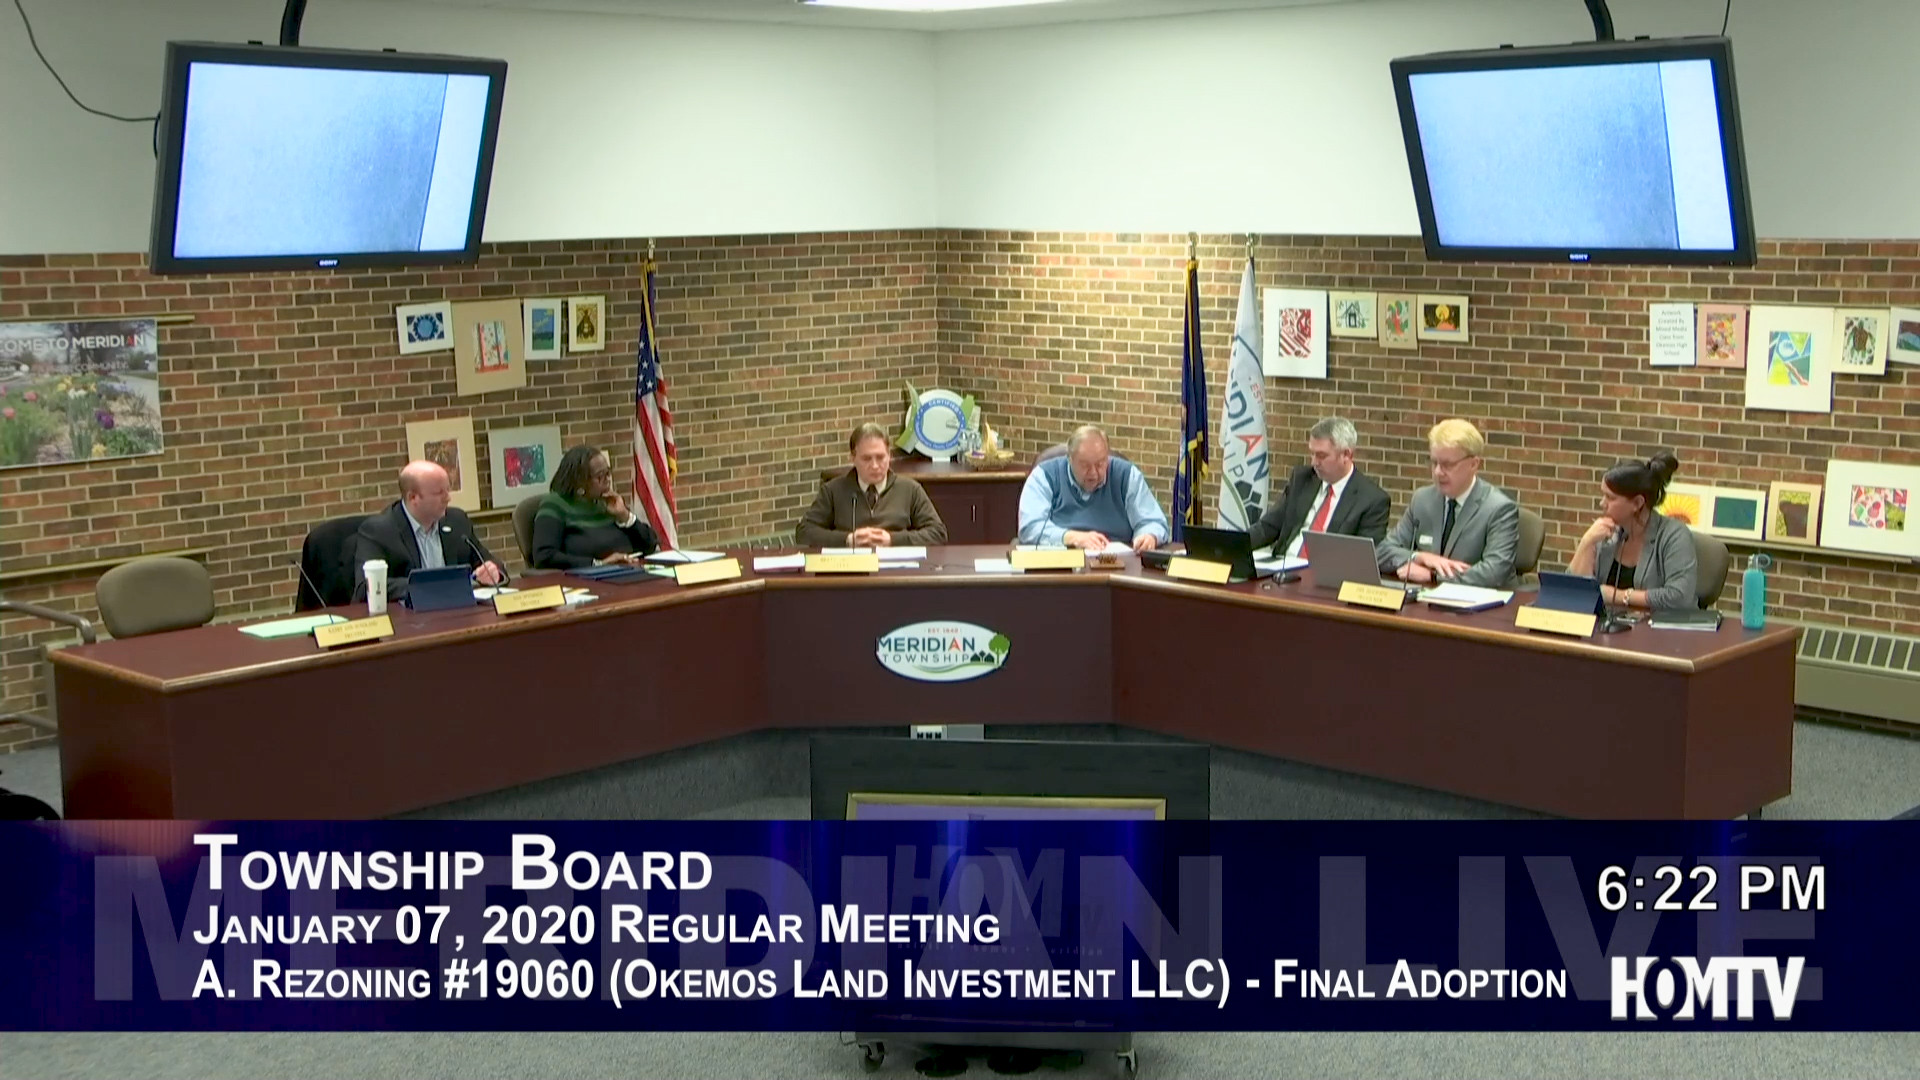 Township Board Discusses Okemos Land Investment Rezoning